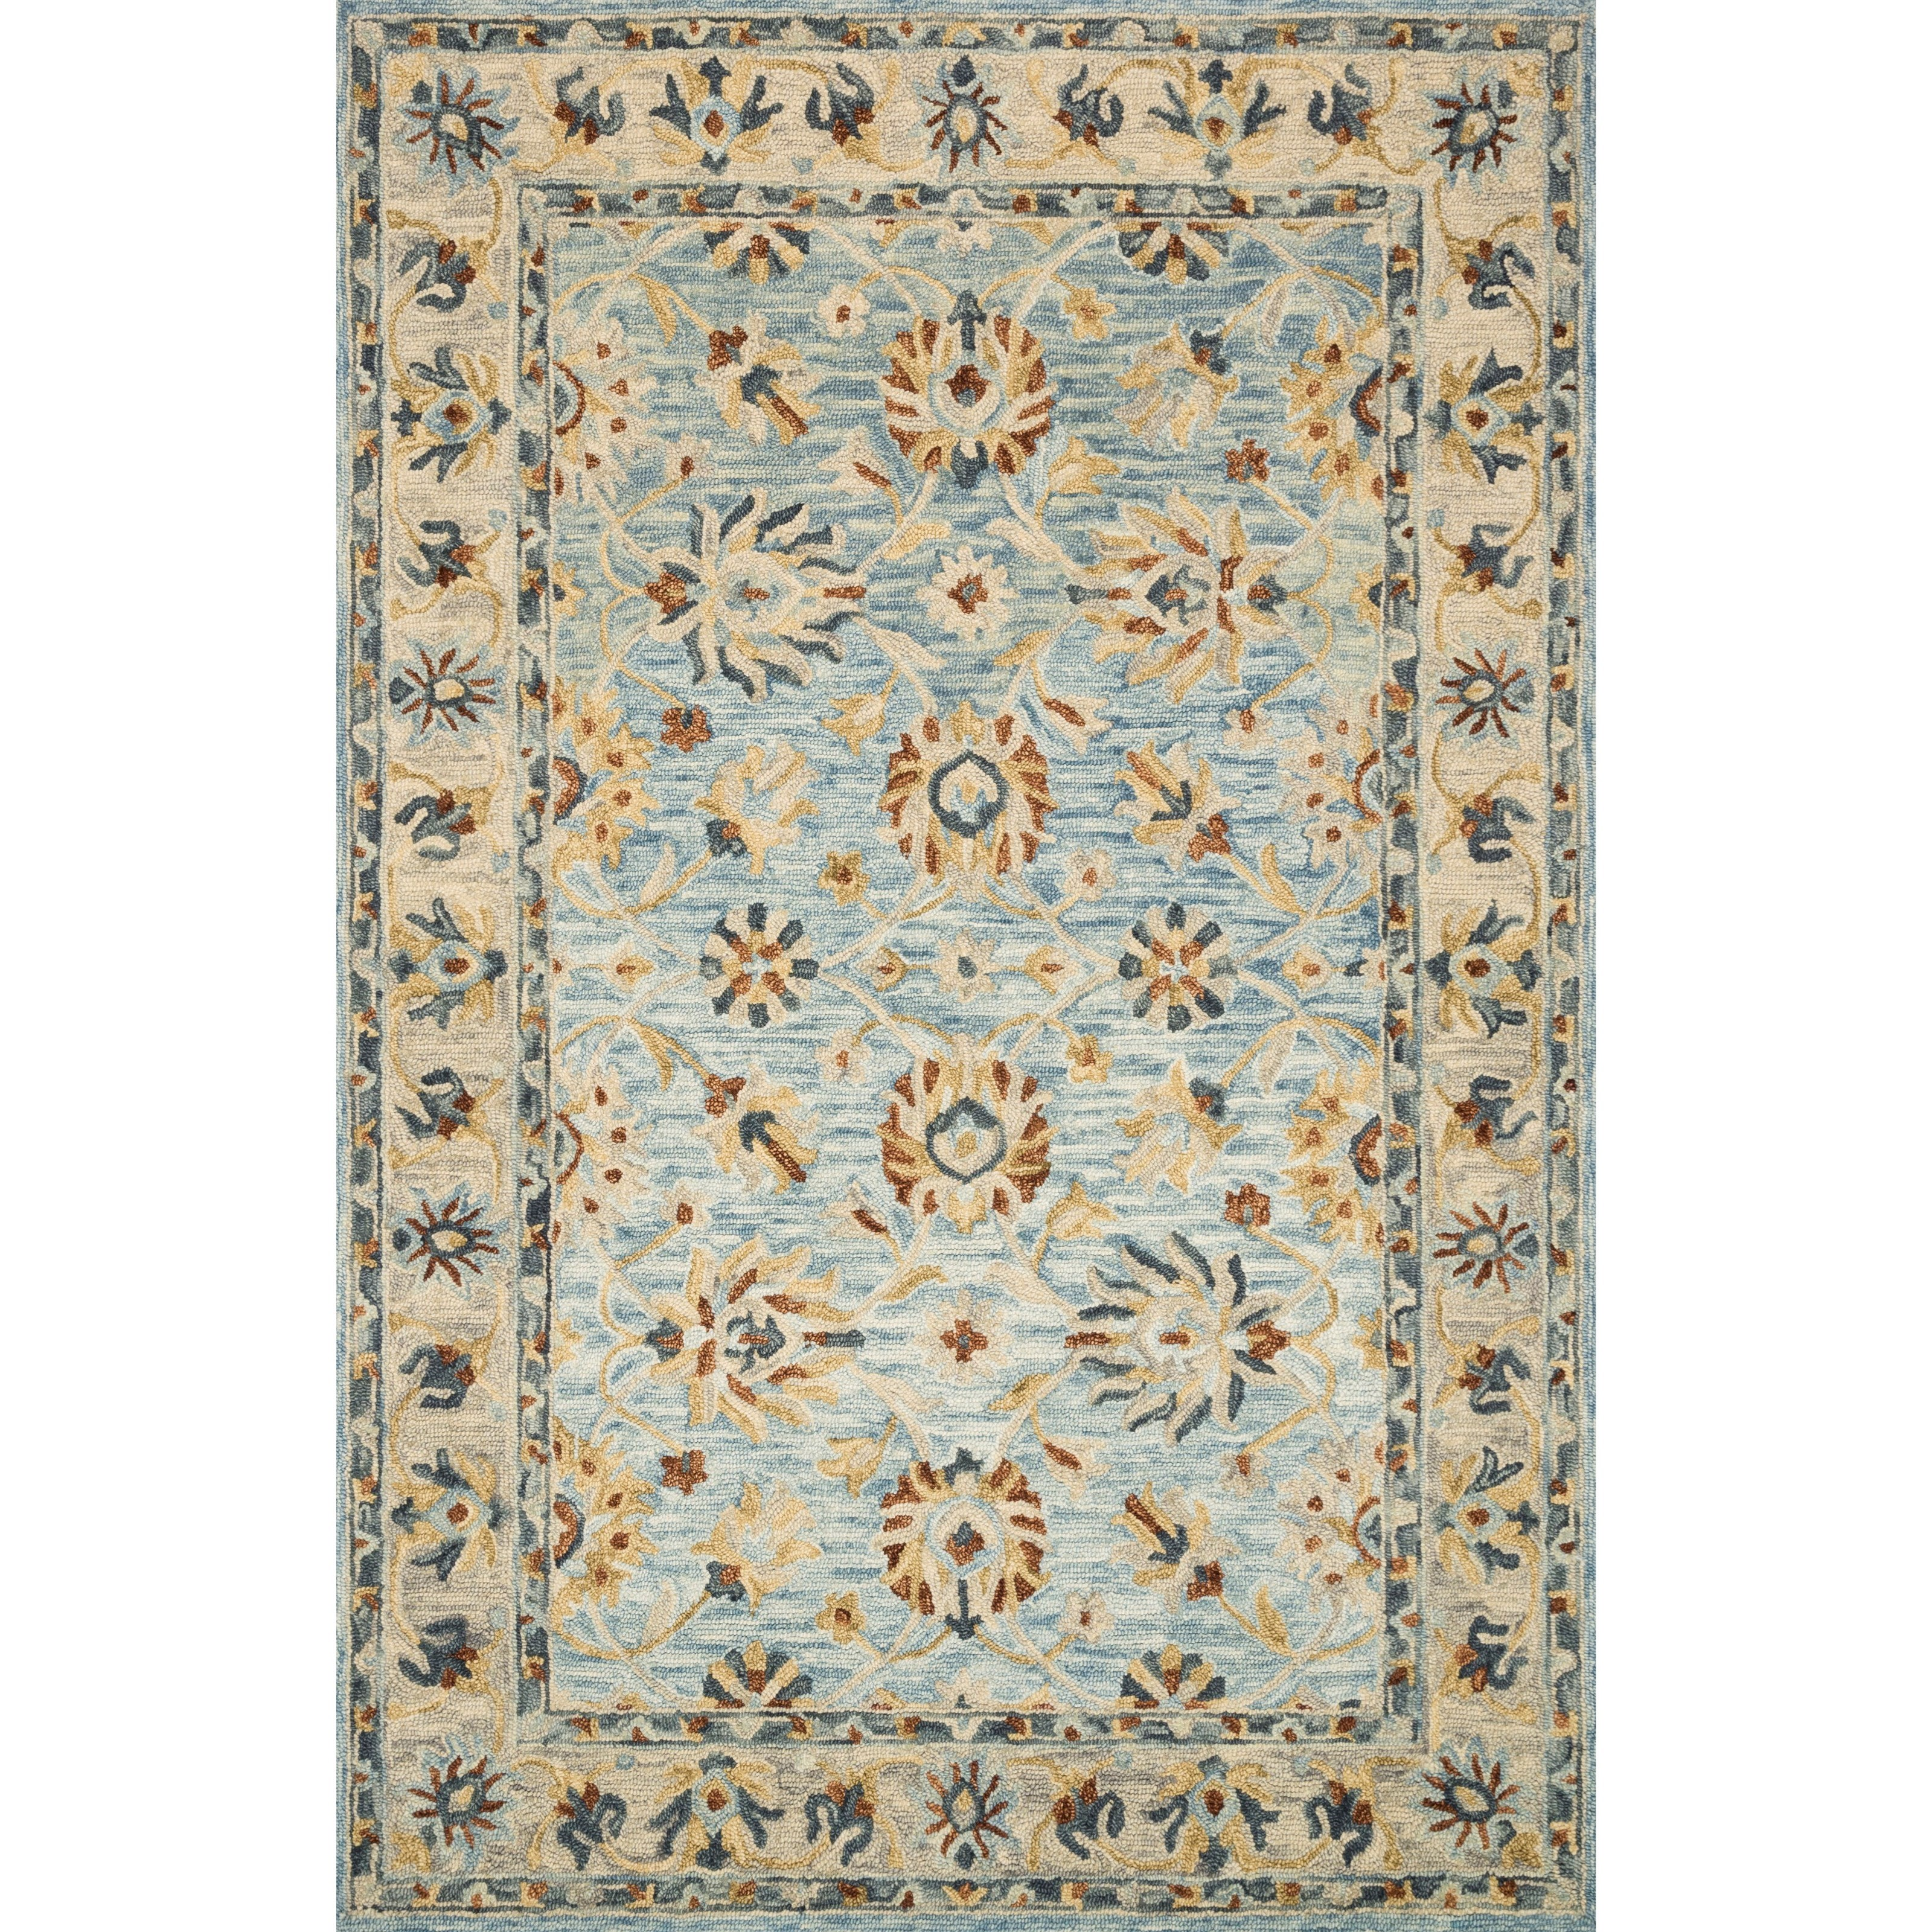 """Victoria 5'0"""" x 7'6"""" Lt. Blue / Natural Rug by Loloi Rugs at Virginia Furniture Market"""